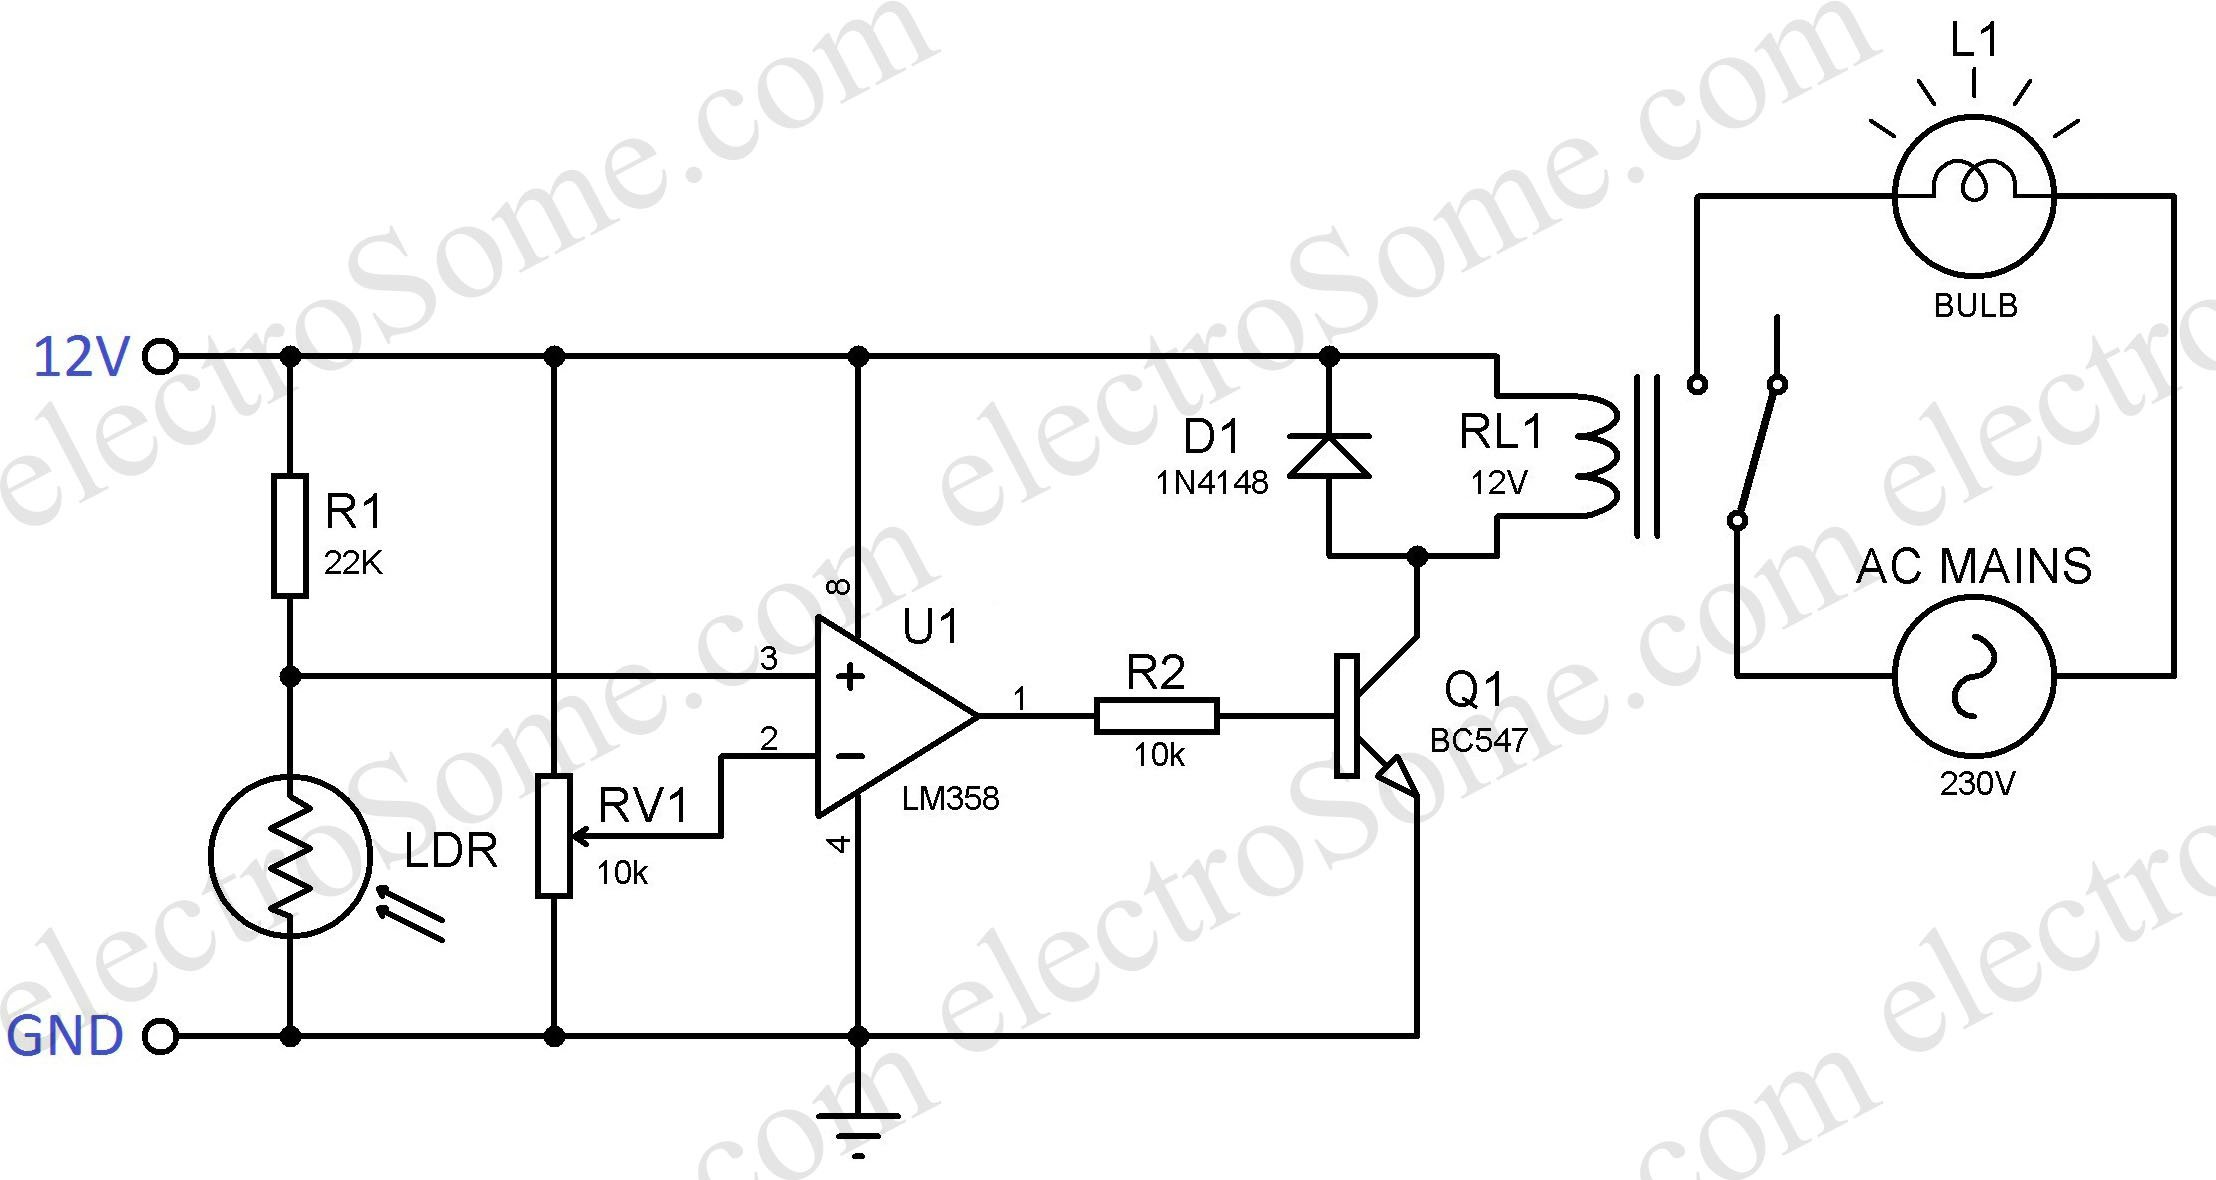 Circuit Diagram Of Ic 555 Timer Schematics Data Wiring Diagrams Internal Automatic Night Lamp Using Ldr Soldering